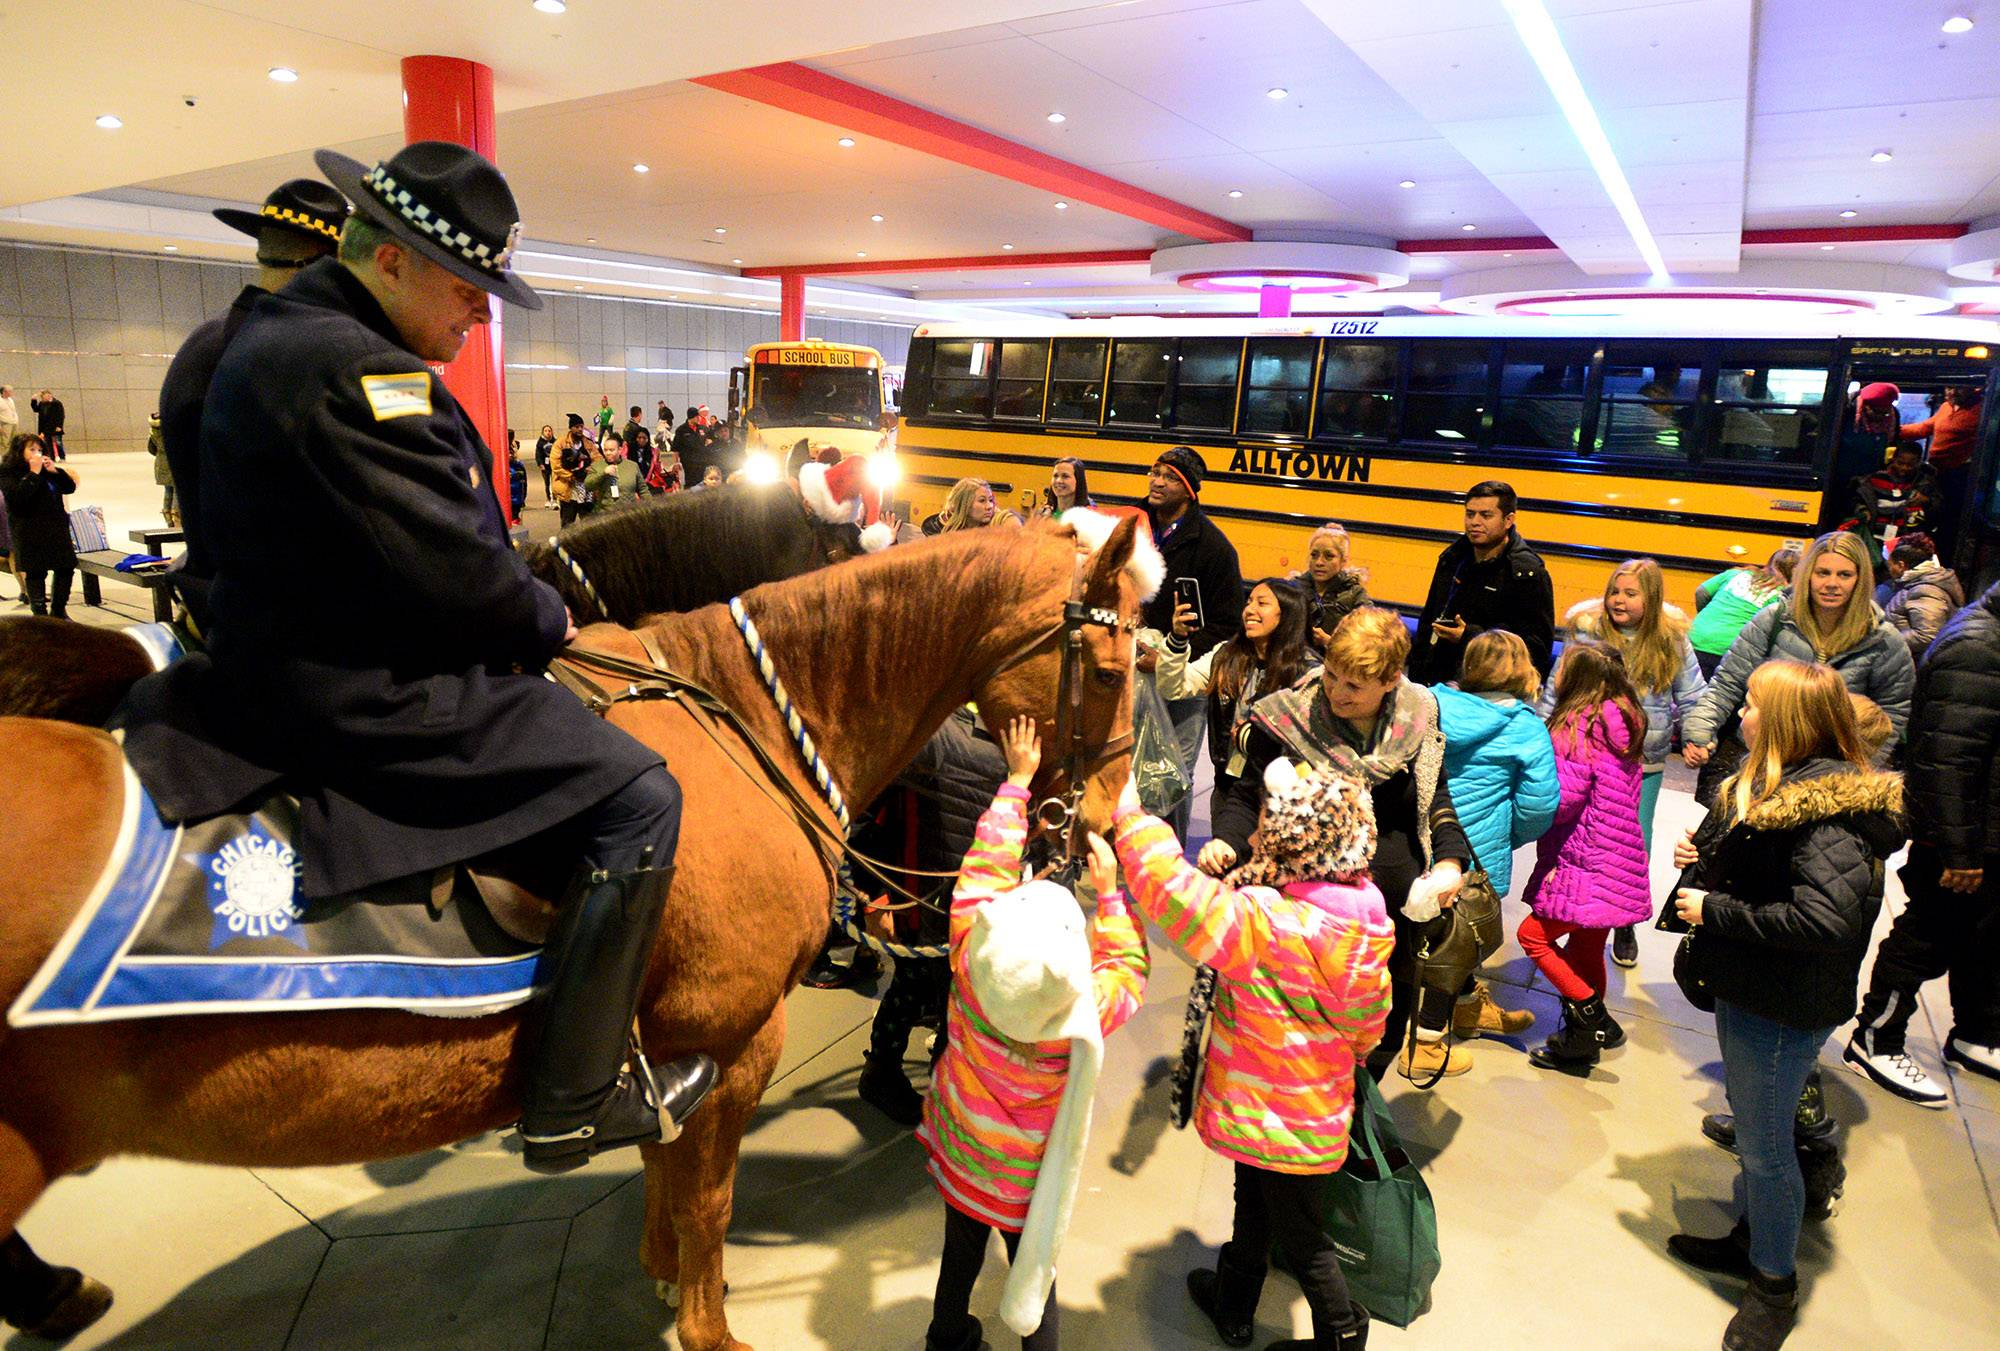 Chicago Police Mounted Patrol officer Richard Jalloway, sitting on Mahoney, greets families at the annual Operation North Pole Christmas Party for seriously ill children and their families Saturday at the Donald E. Stephens Convention Center in Rosemont.